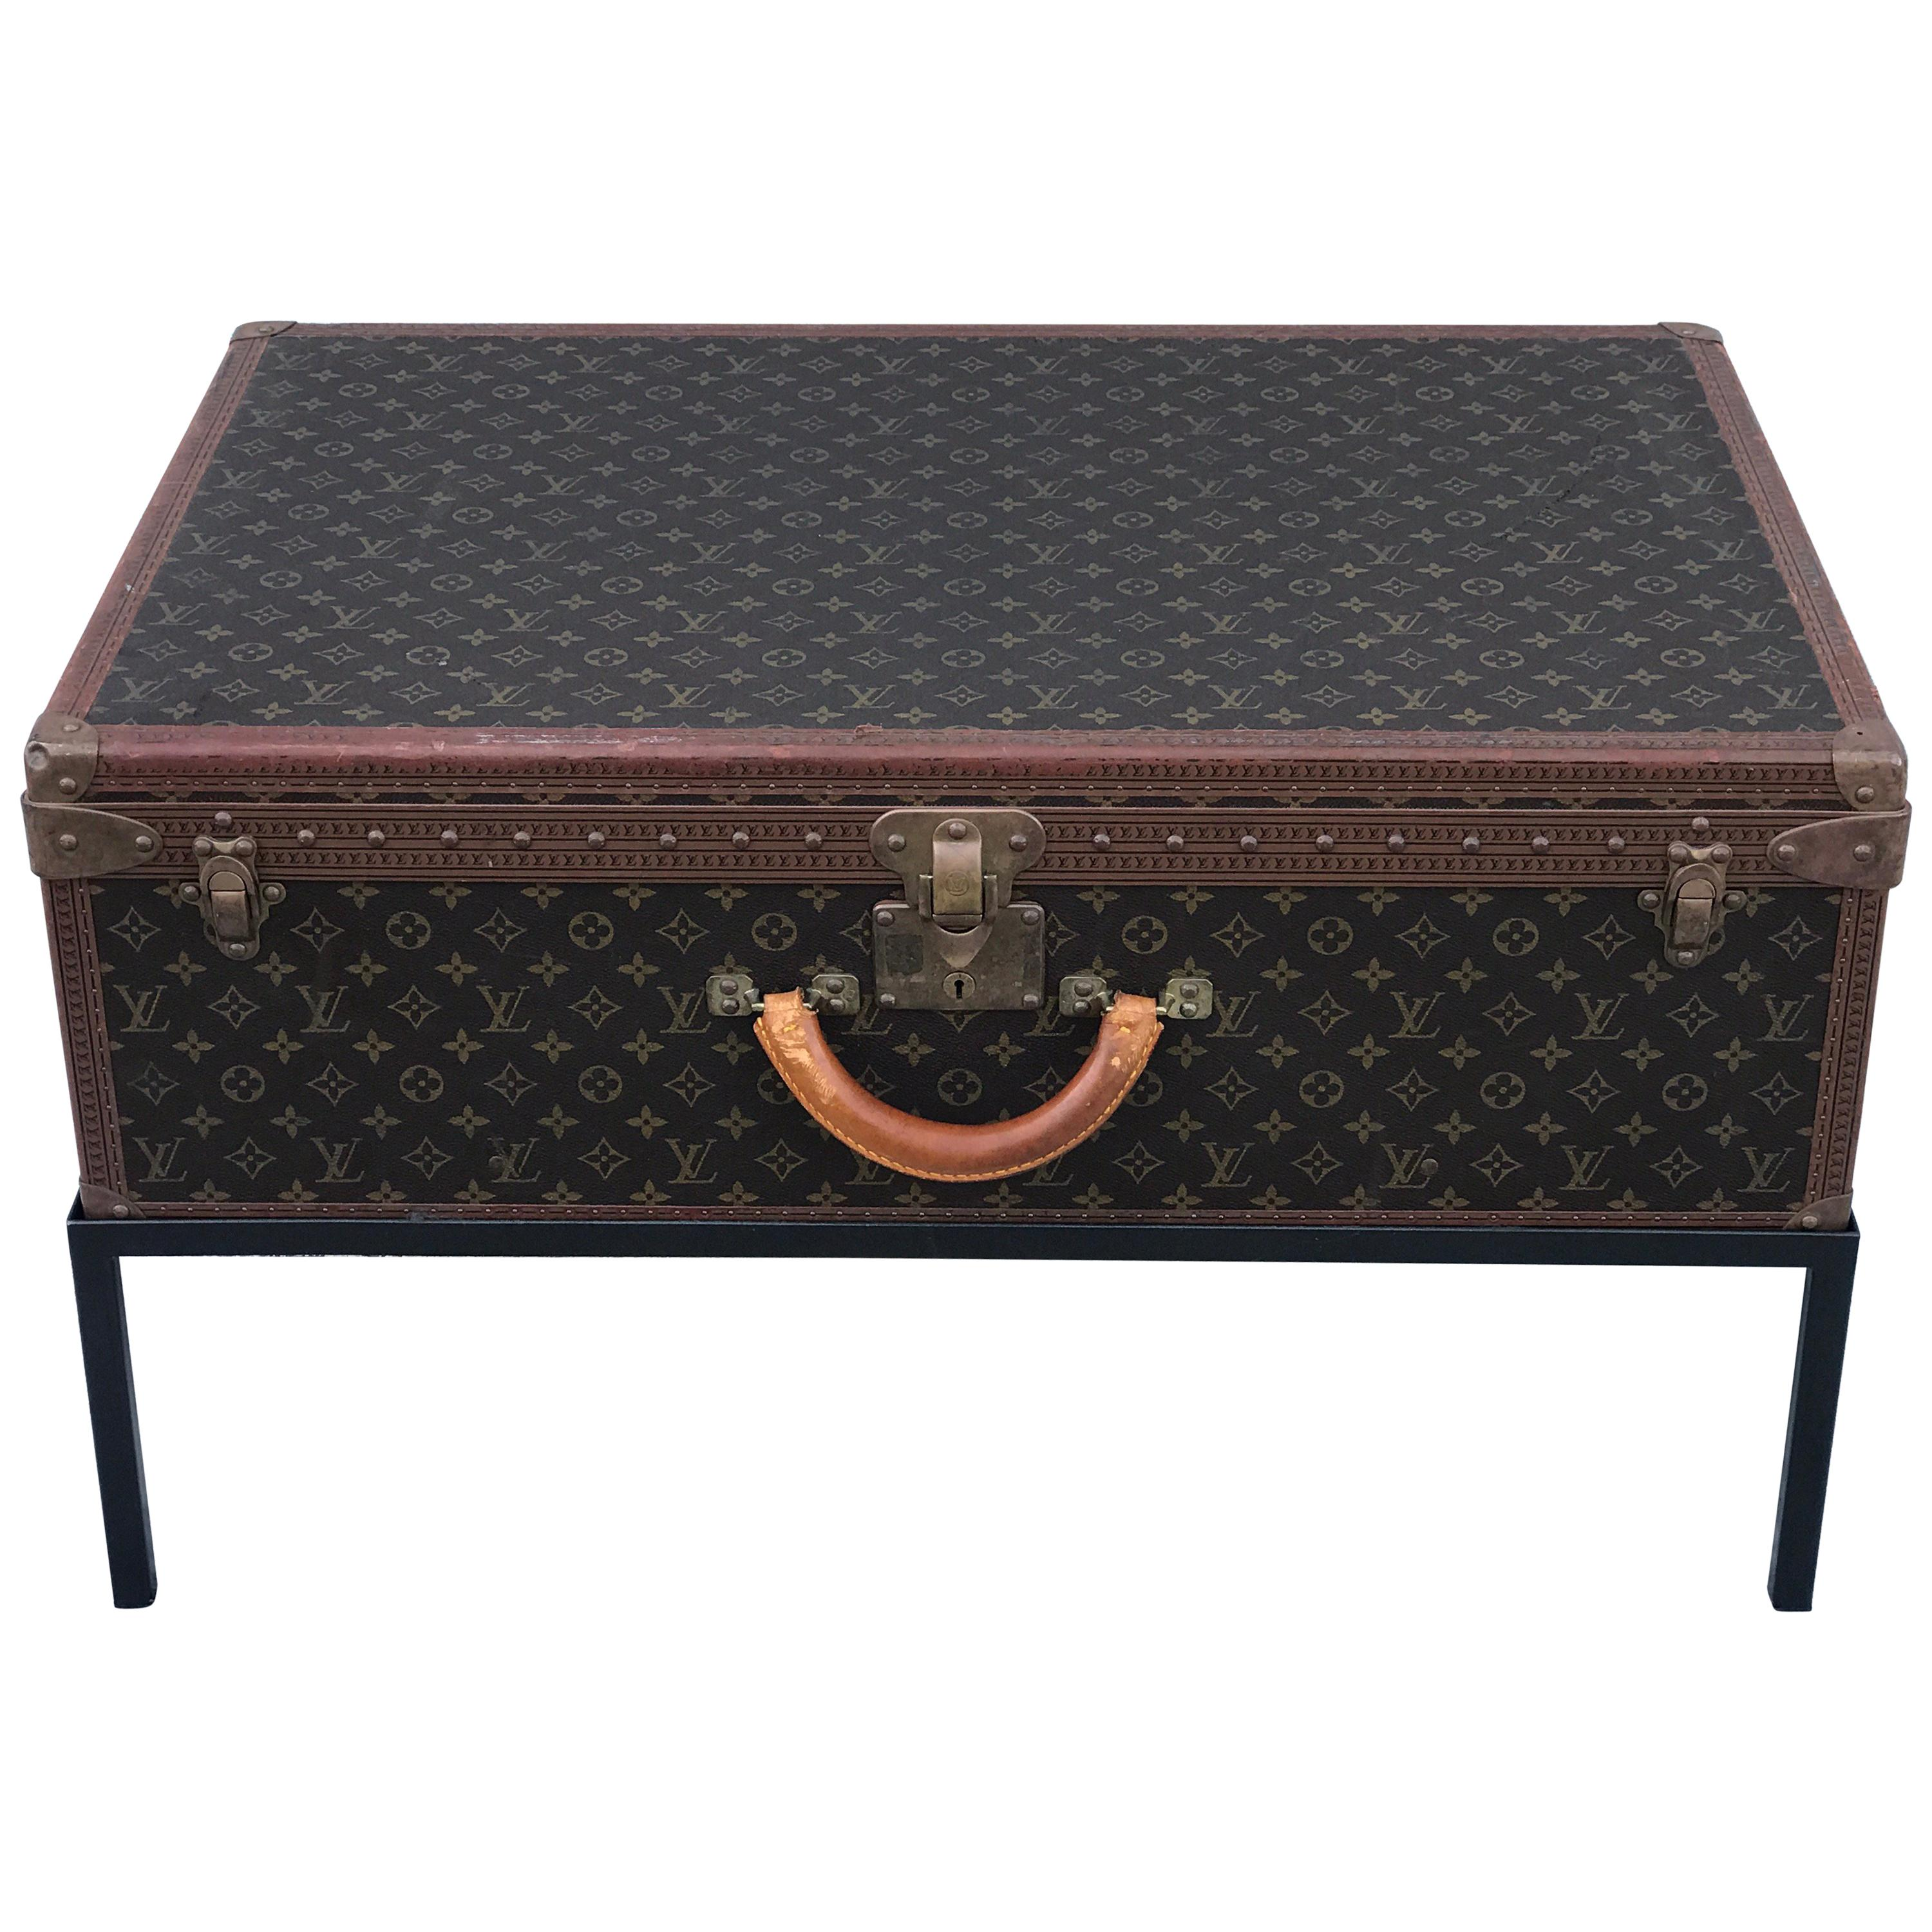 pacific living room coffee table trunk chest color ideas with dark furniture antique and vintage trunks luggage 1 178 for sale at 1stdibs